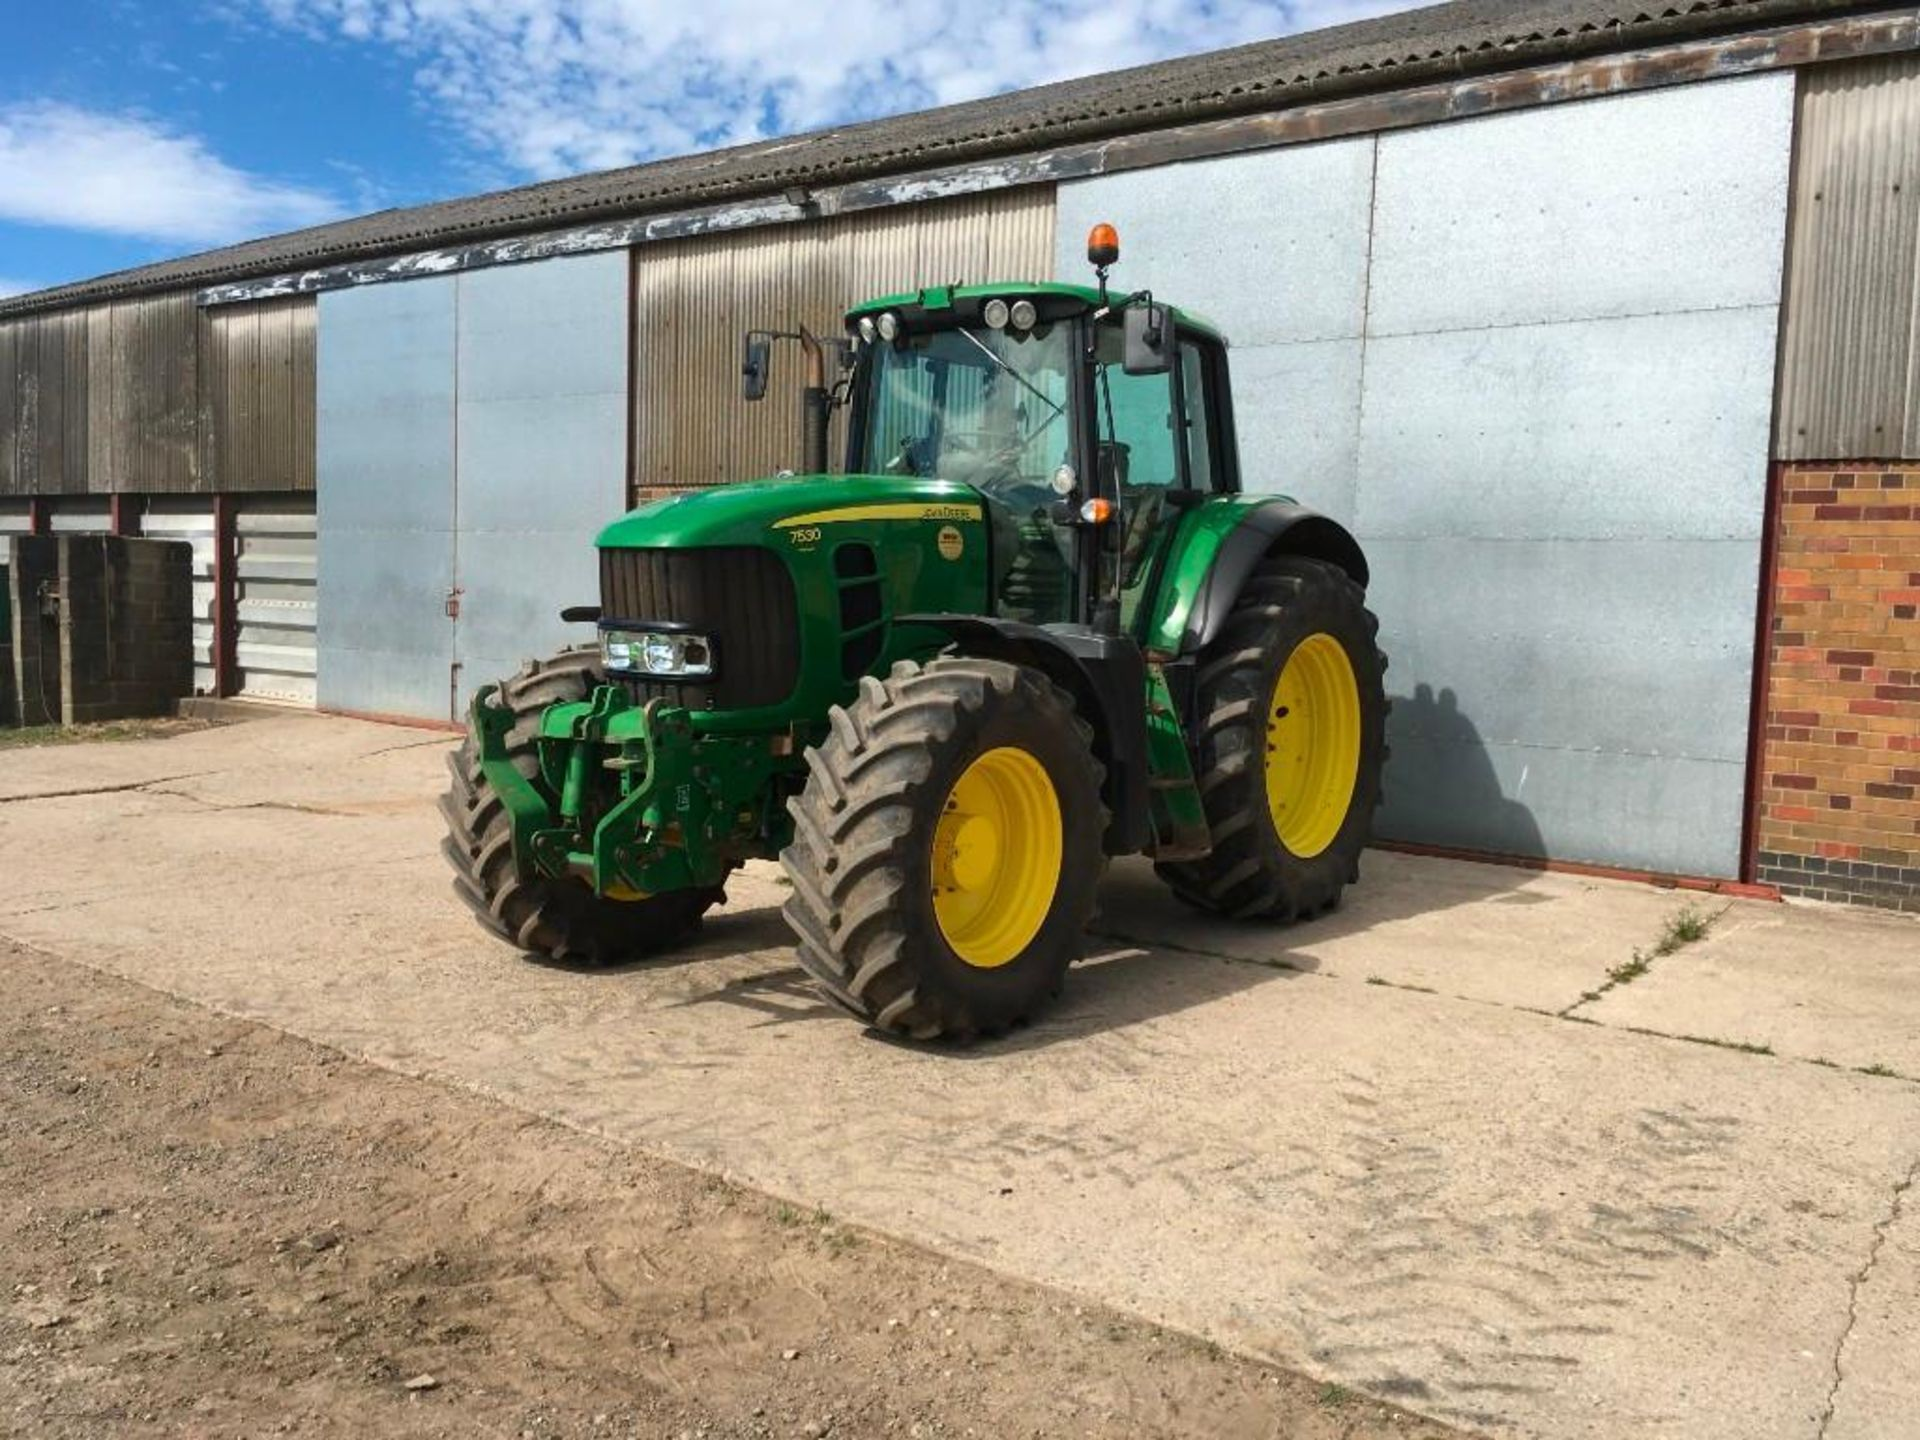 2008 John Deere 7530 tractor with auto quad gear box, 4 spool valves, pick up hitch, air seat, front - Image 5 of 14